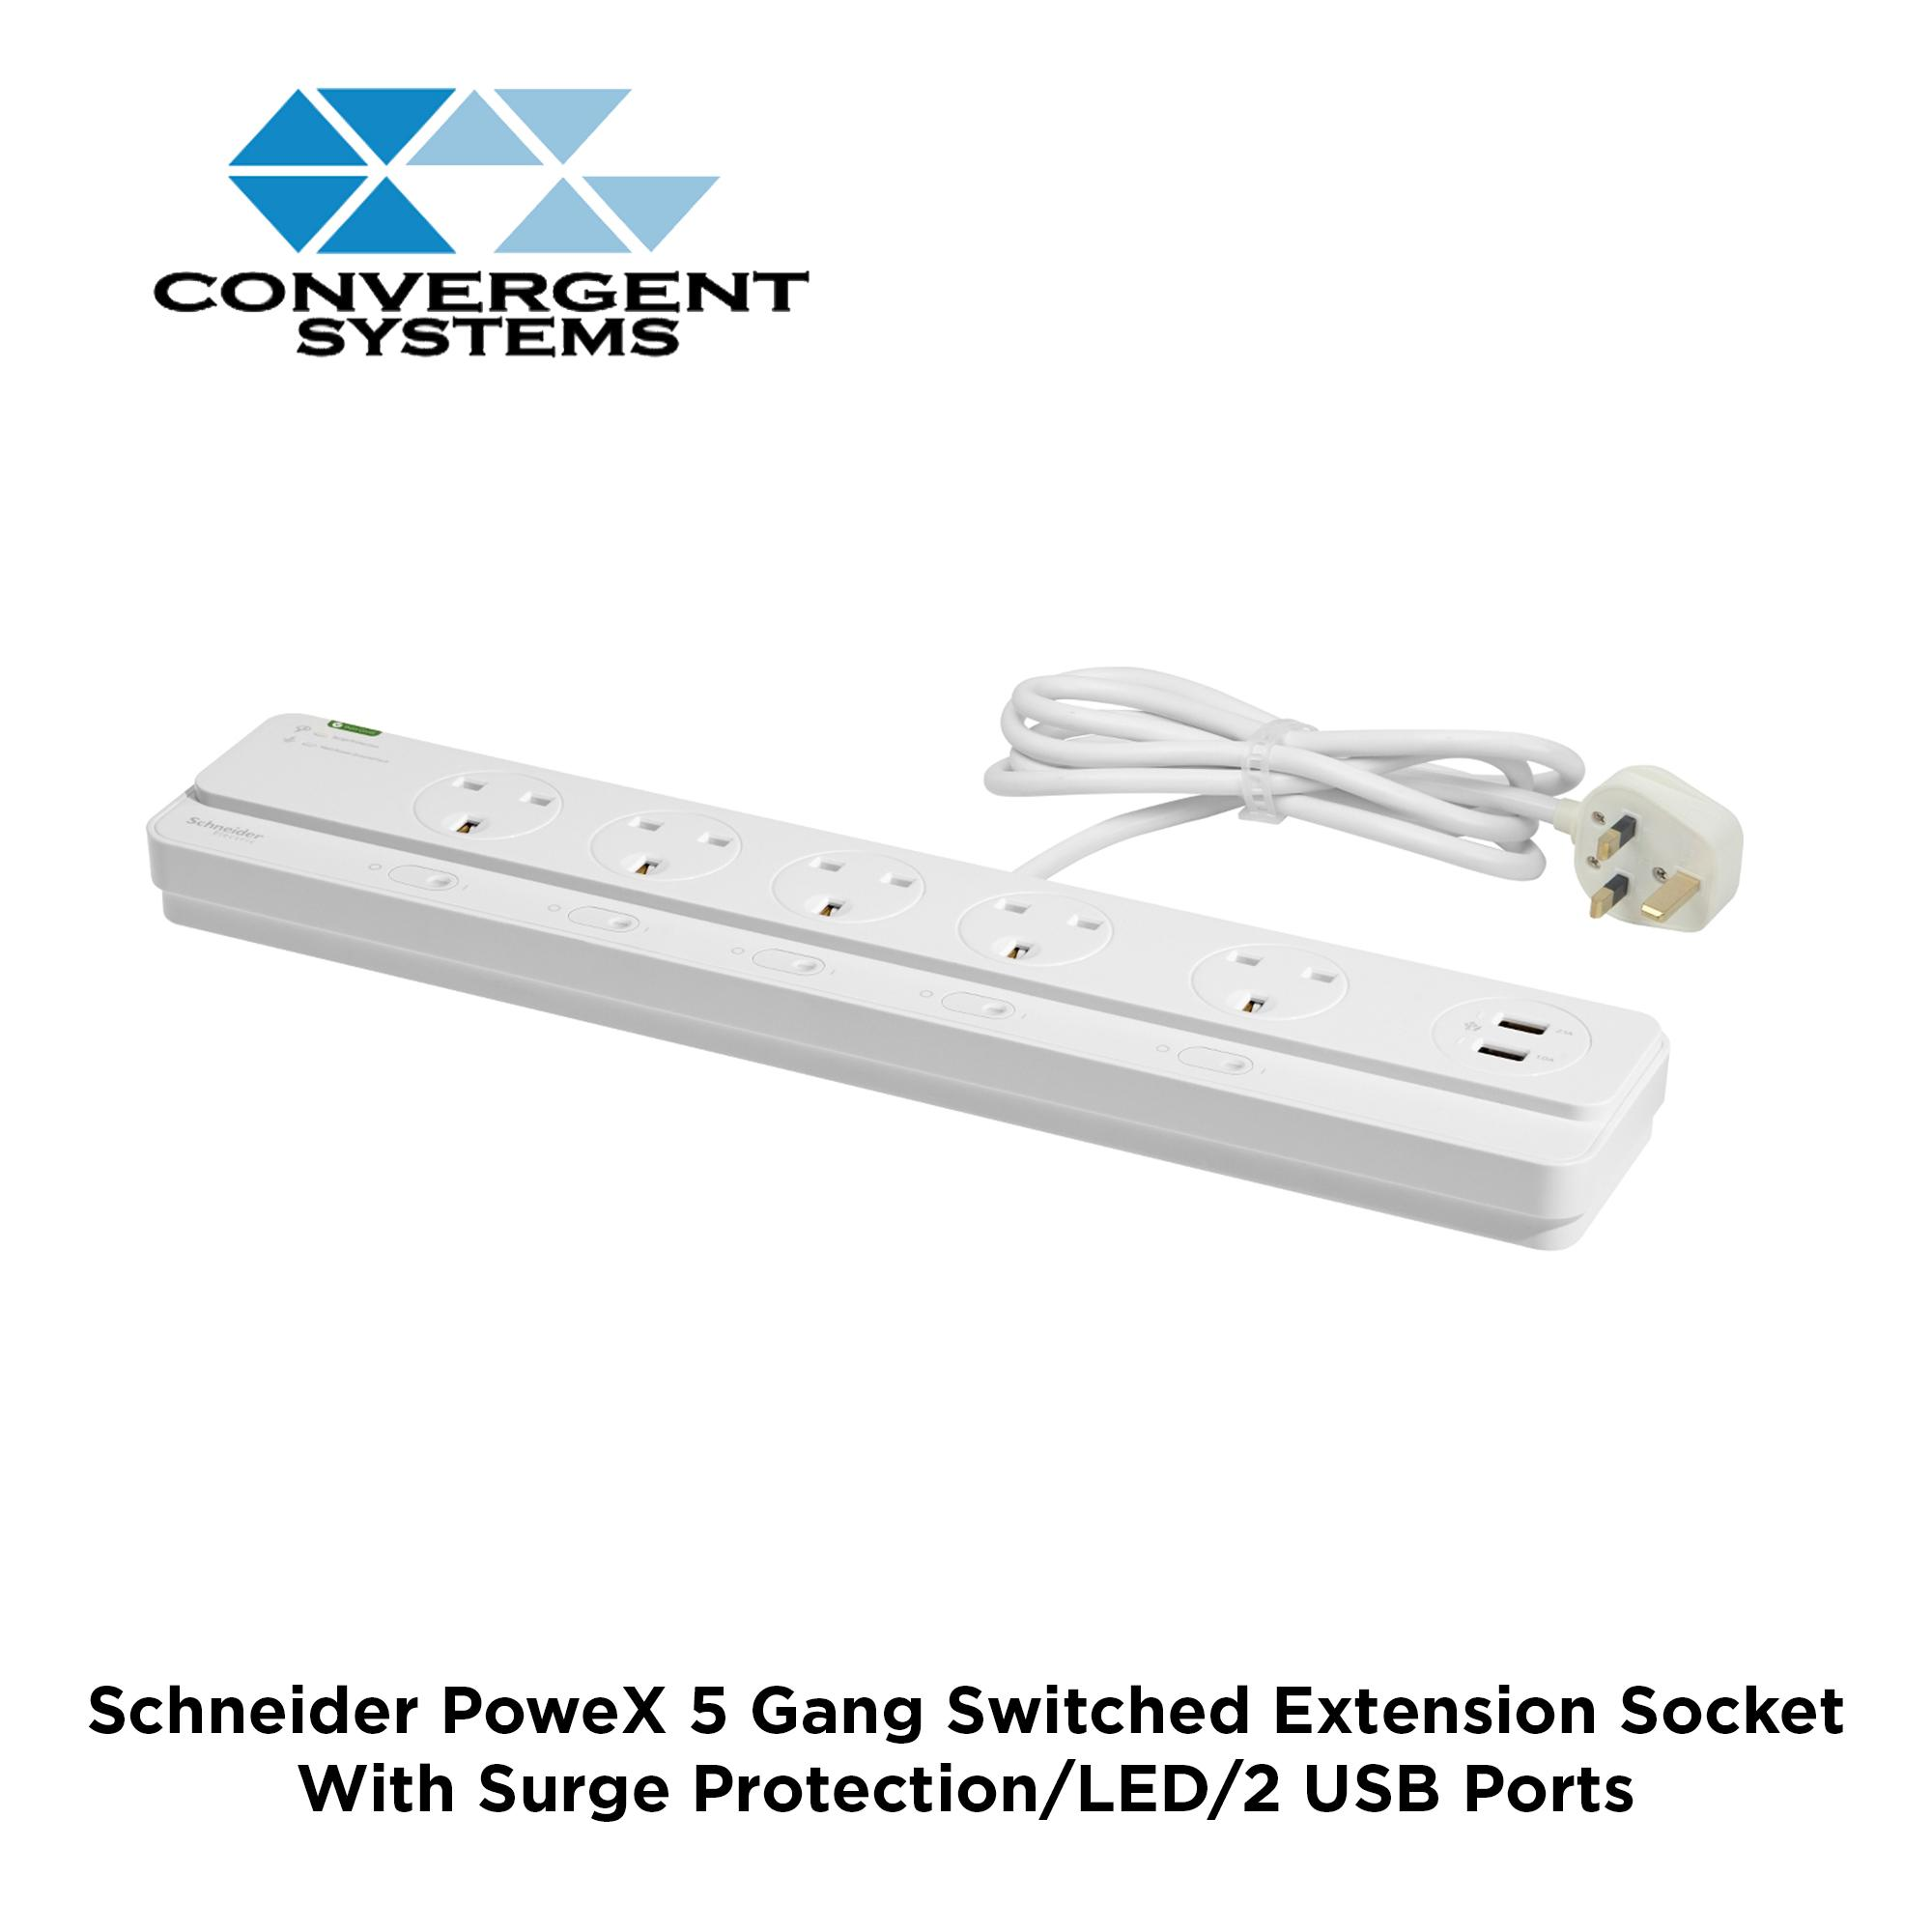 Schenider PoweX 13A 5 Gang Switched Extension Socket with Surge Protection, LED & 2 USB Port